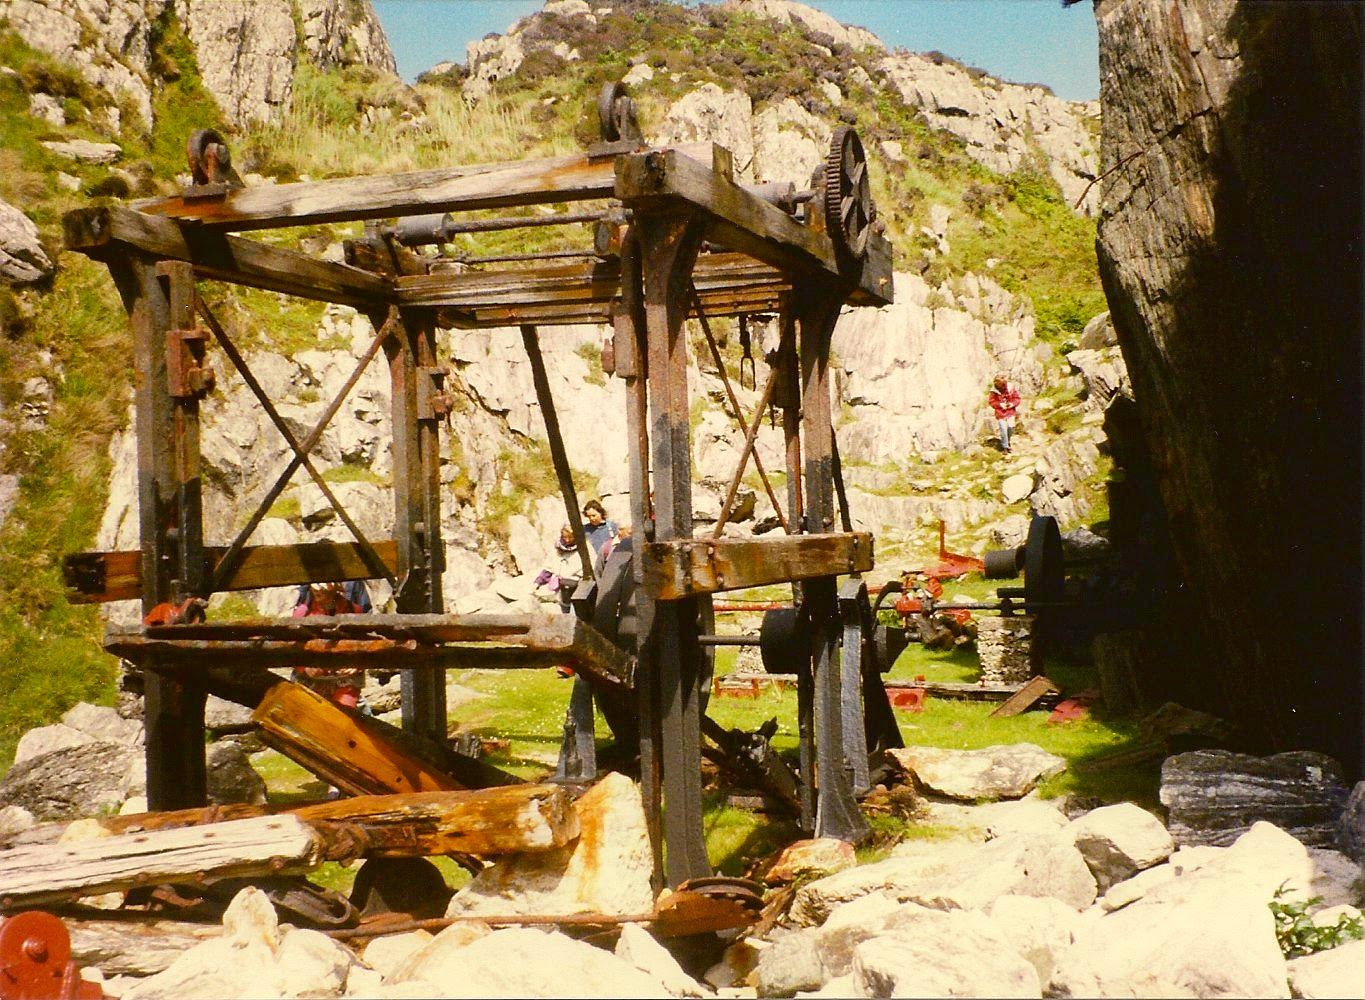 IONA: The Marble Quarry (Photo)